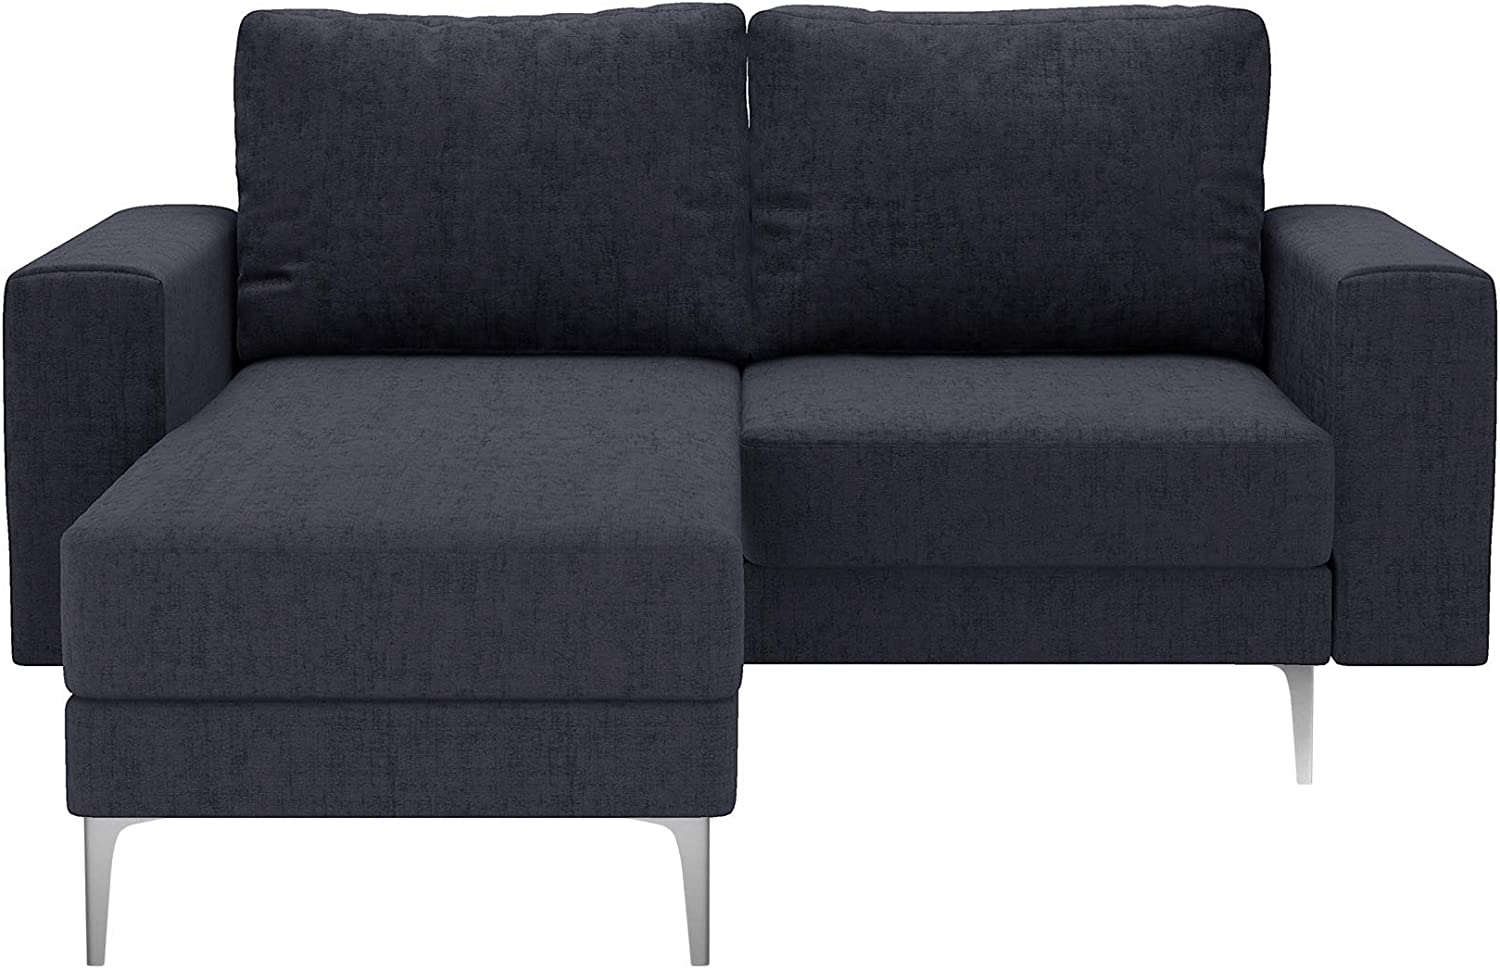 Poppy Loveseat Raleigh Super sale period limited Mall Sectional - Lovese Leonie Sofa